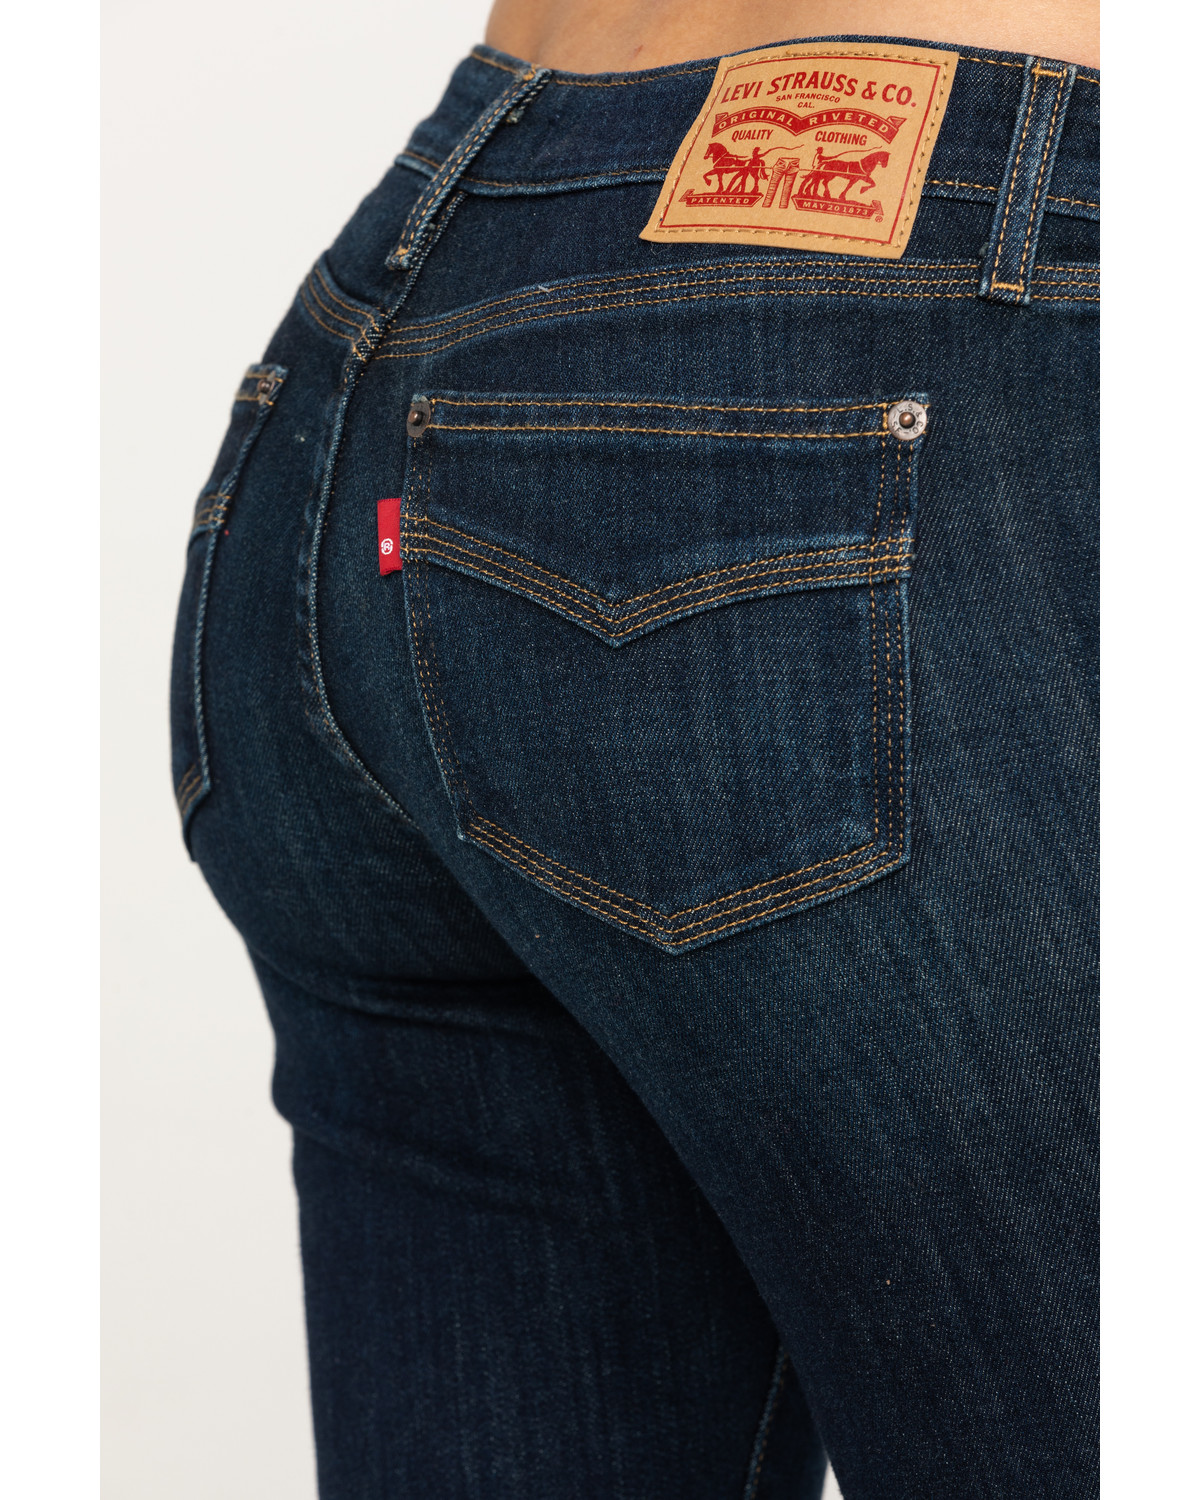 b0b768dface Levi's Women's 715 Wash Out Vintage Bootcut Jeans - Country Outfitter